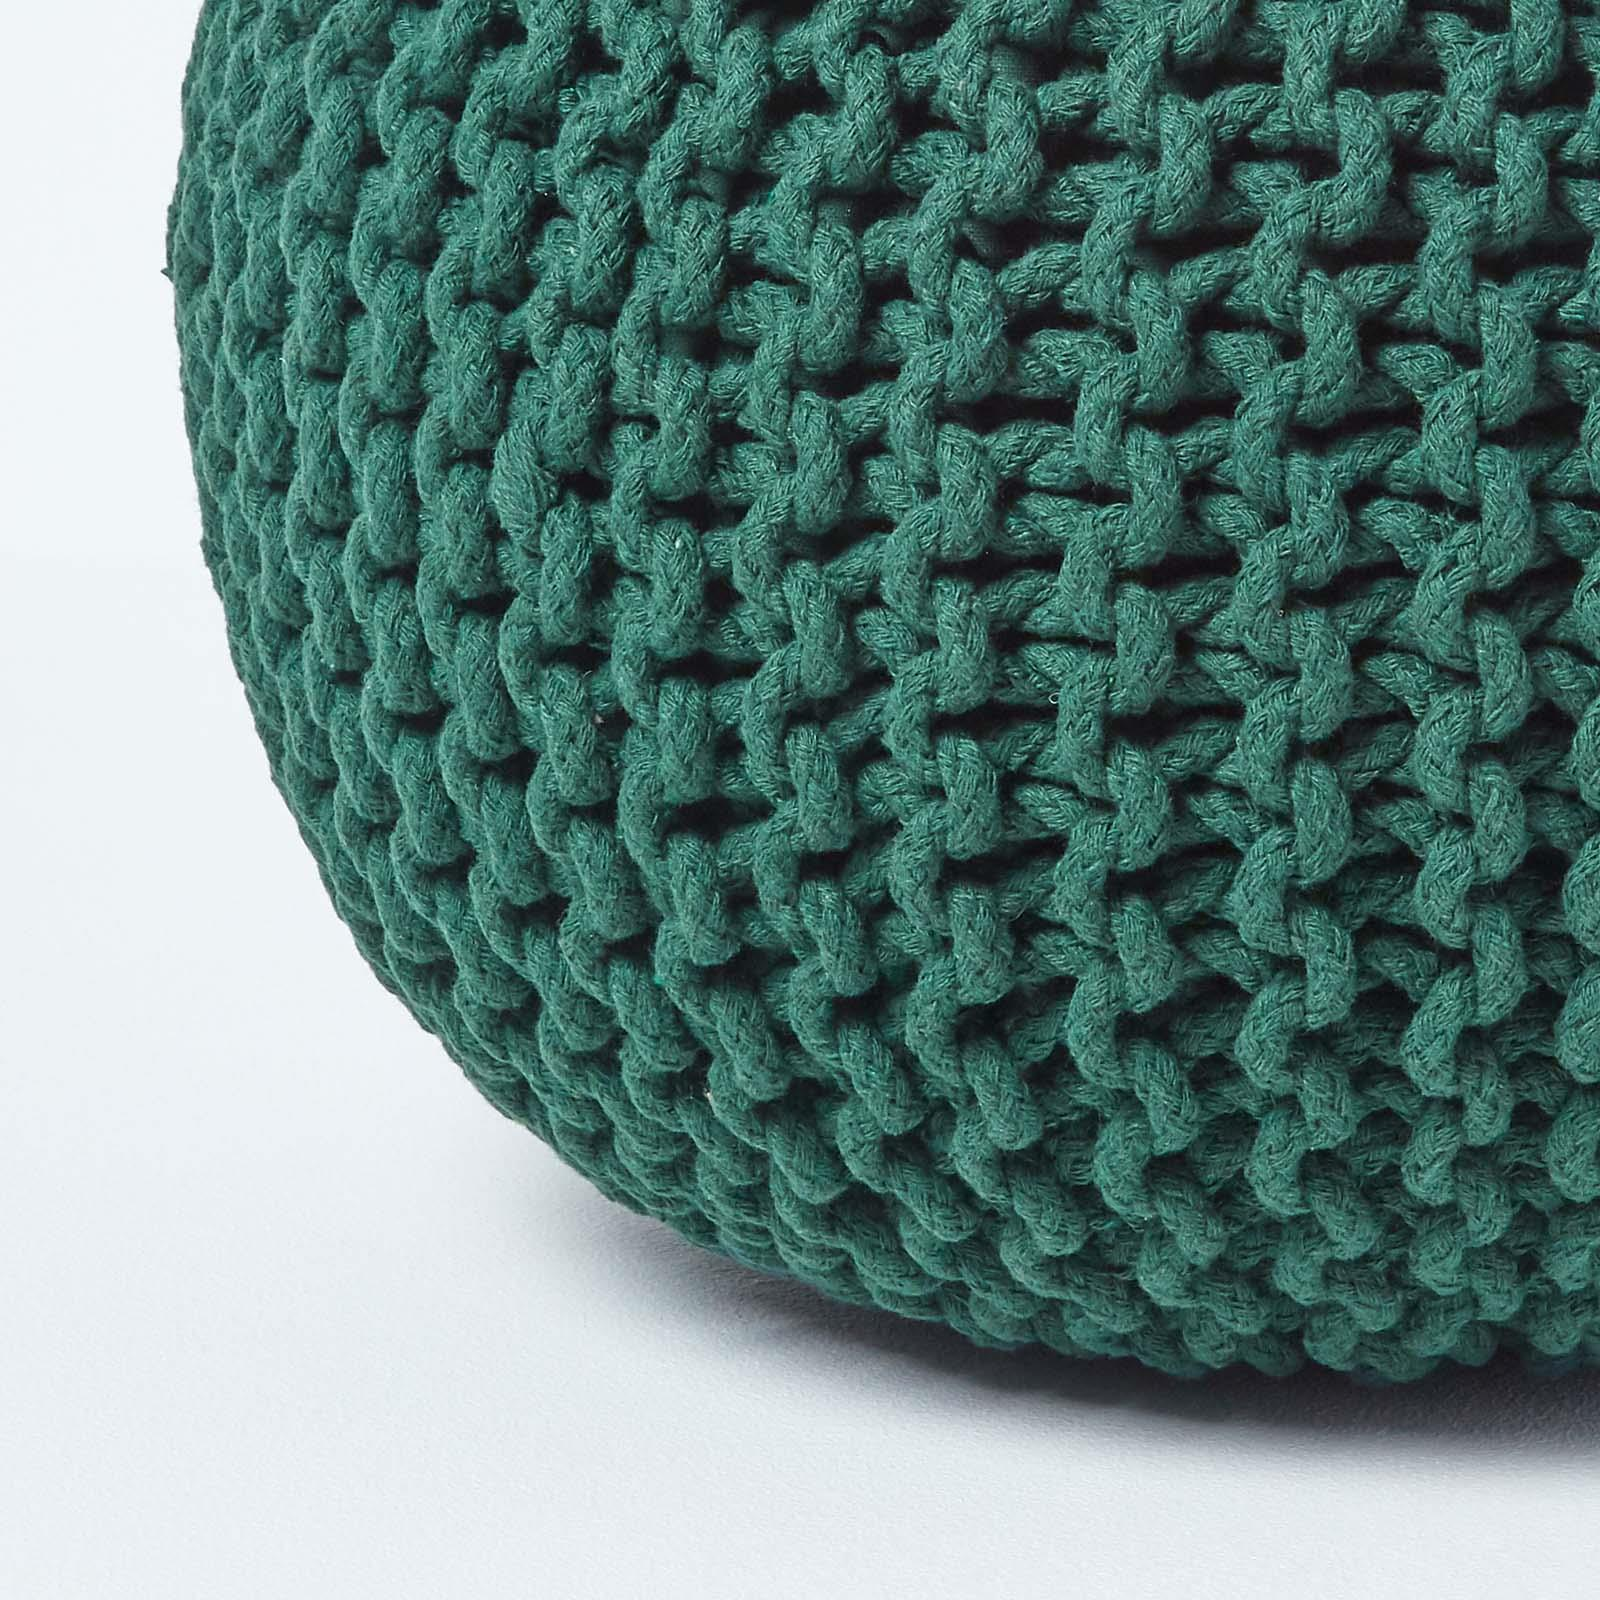 Hand-Knitted-100-Cotton-Pouffes-Round-Sphere-Or-Cube-Square-Chunky-Footstools thumbnail 46